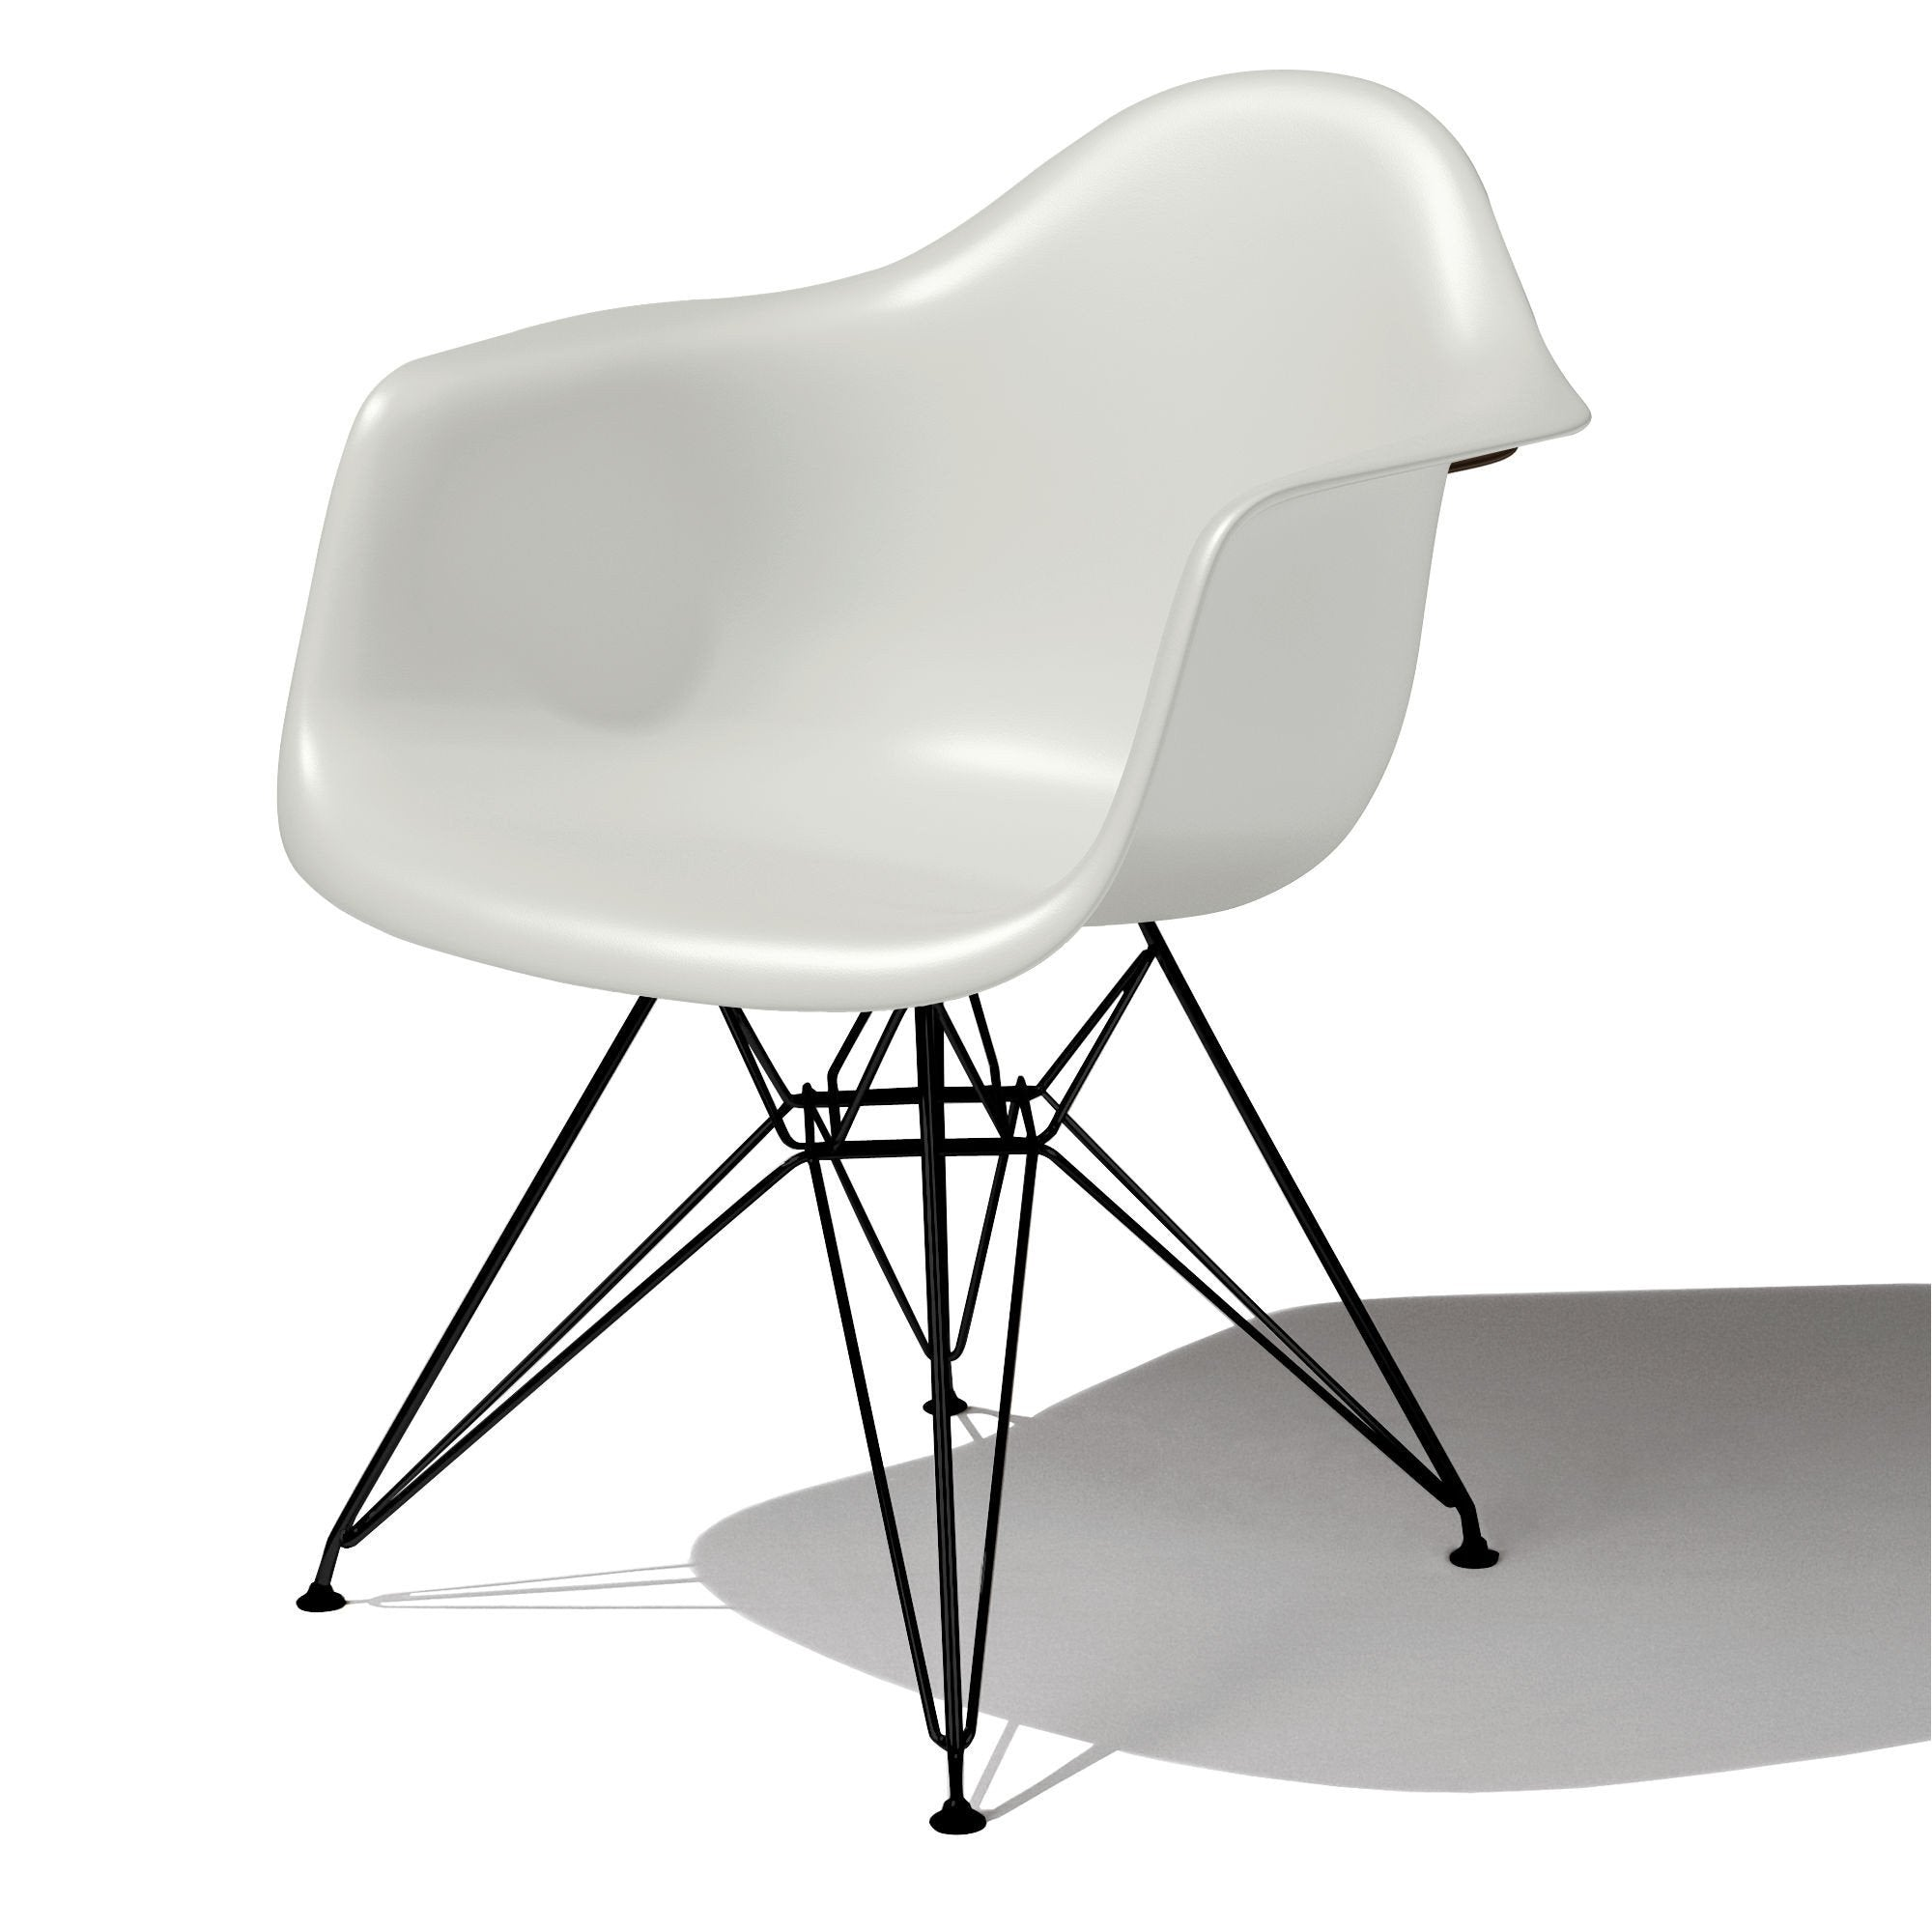 Eames Molded Plastic Arm Chair wire base DAR